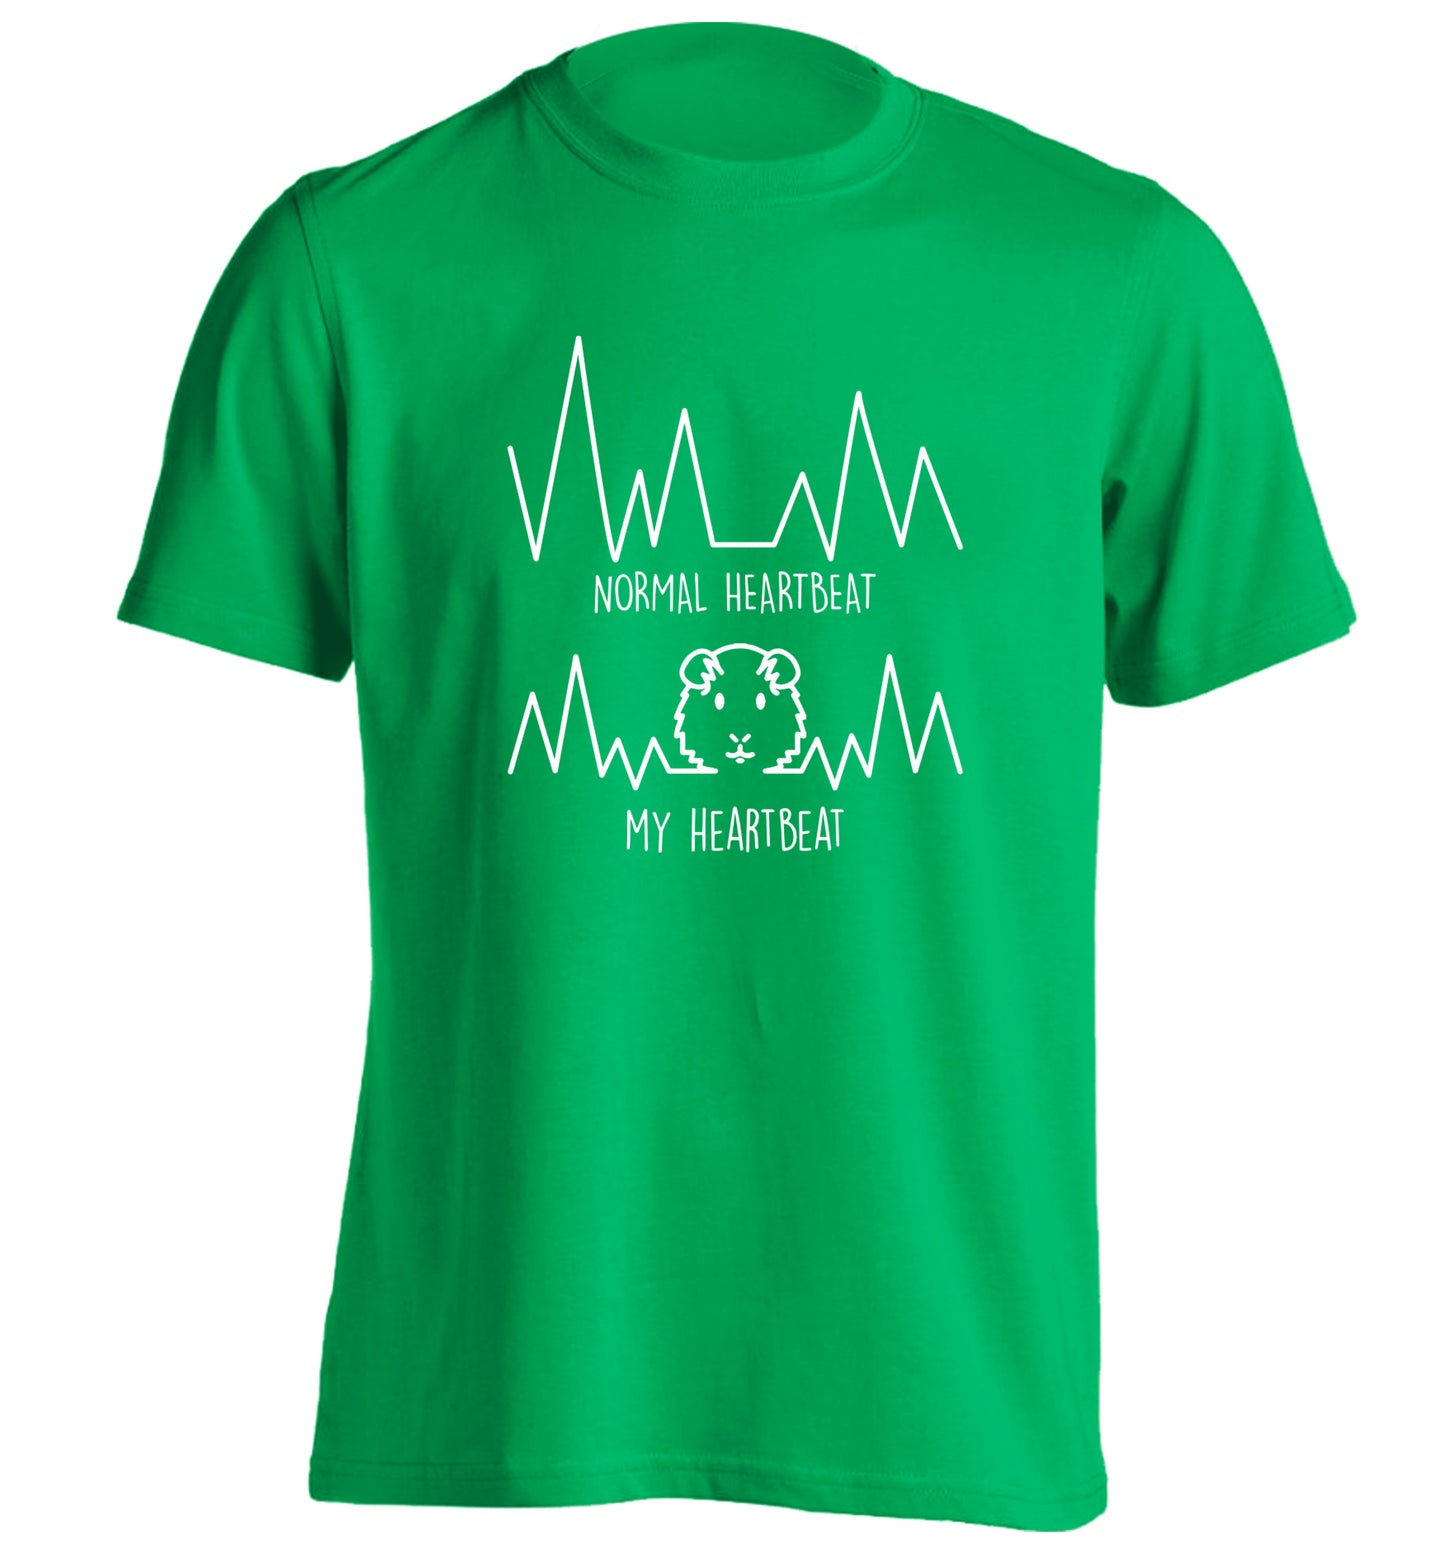 Normal heartbeat vs my heartbeat guinea pig lover adults unisex green Tshirt 2XL